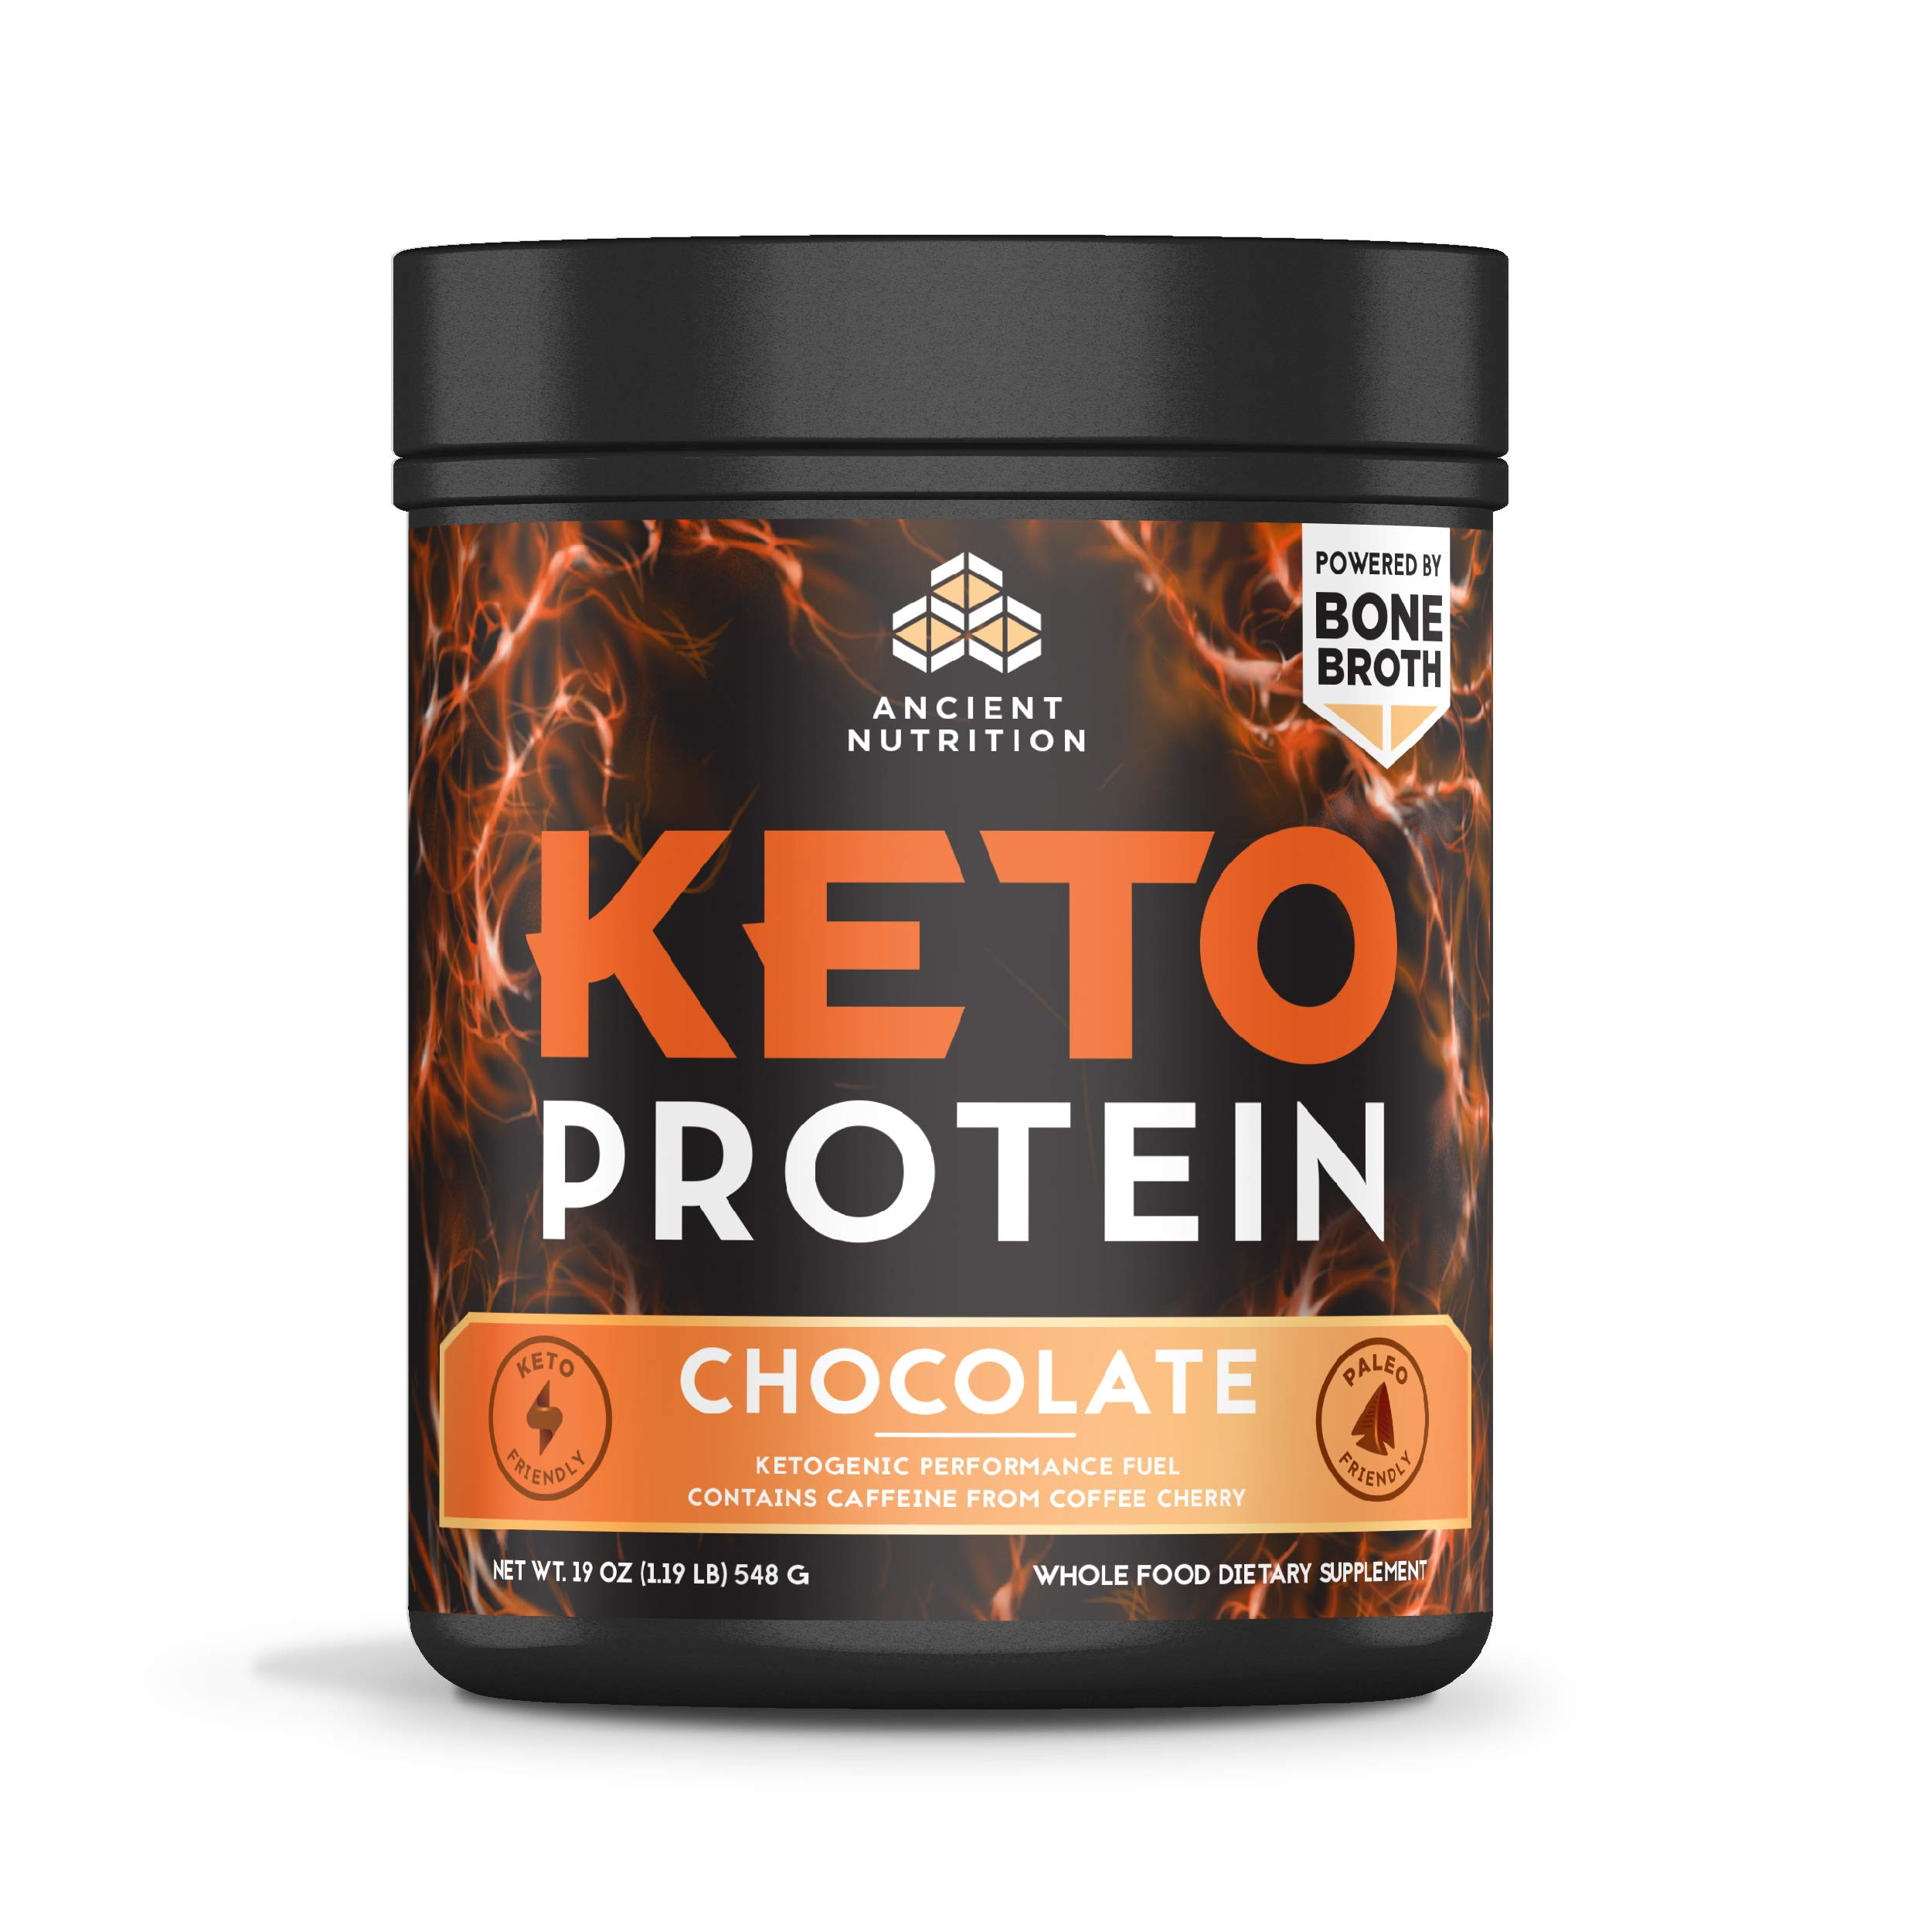 Ancient Nutrition KetoPROTEIN Powder Chocolate, 17 Servings - Keto Protein Diet Supplement, High Quality Low Carb Proteins and Fats from Bone Broth and MCT Oil'' and a Variation Size of'' 17 Servings by Ancient Nutrition